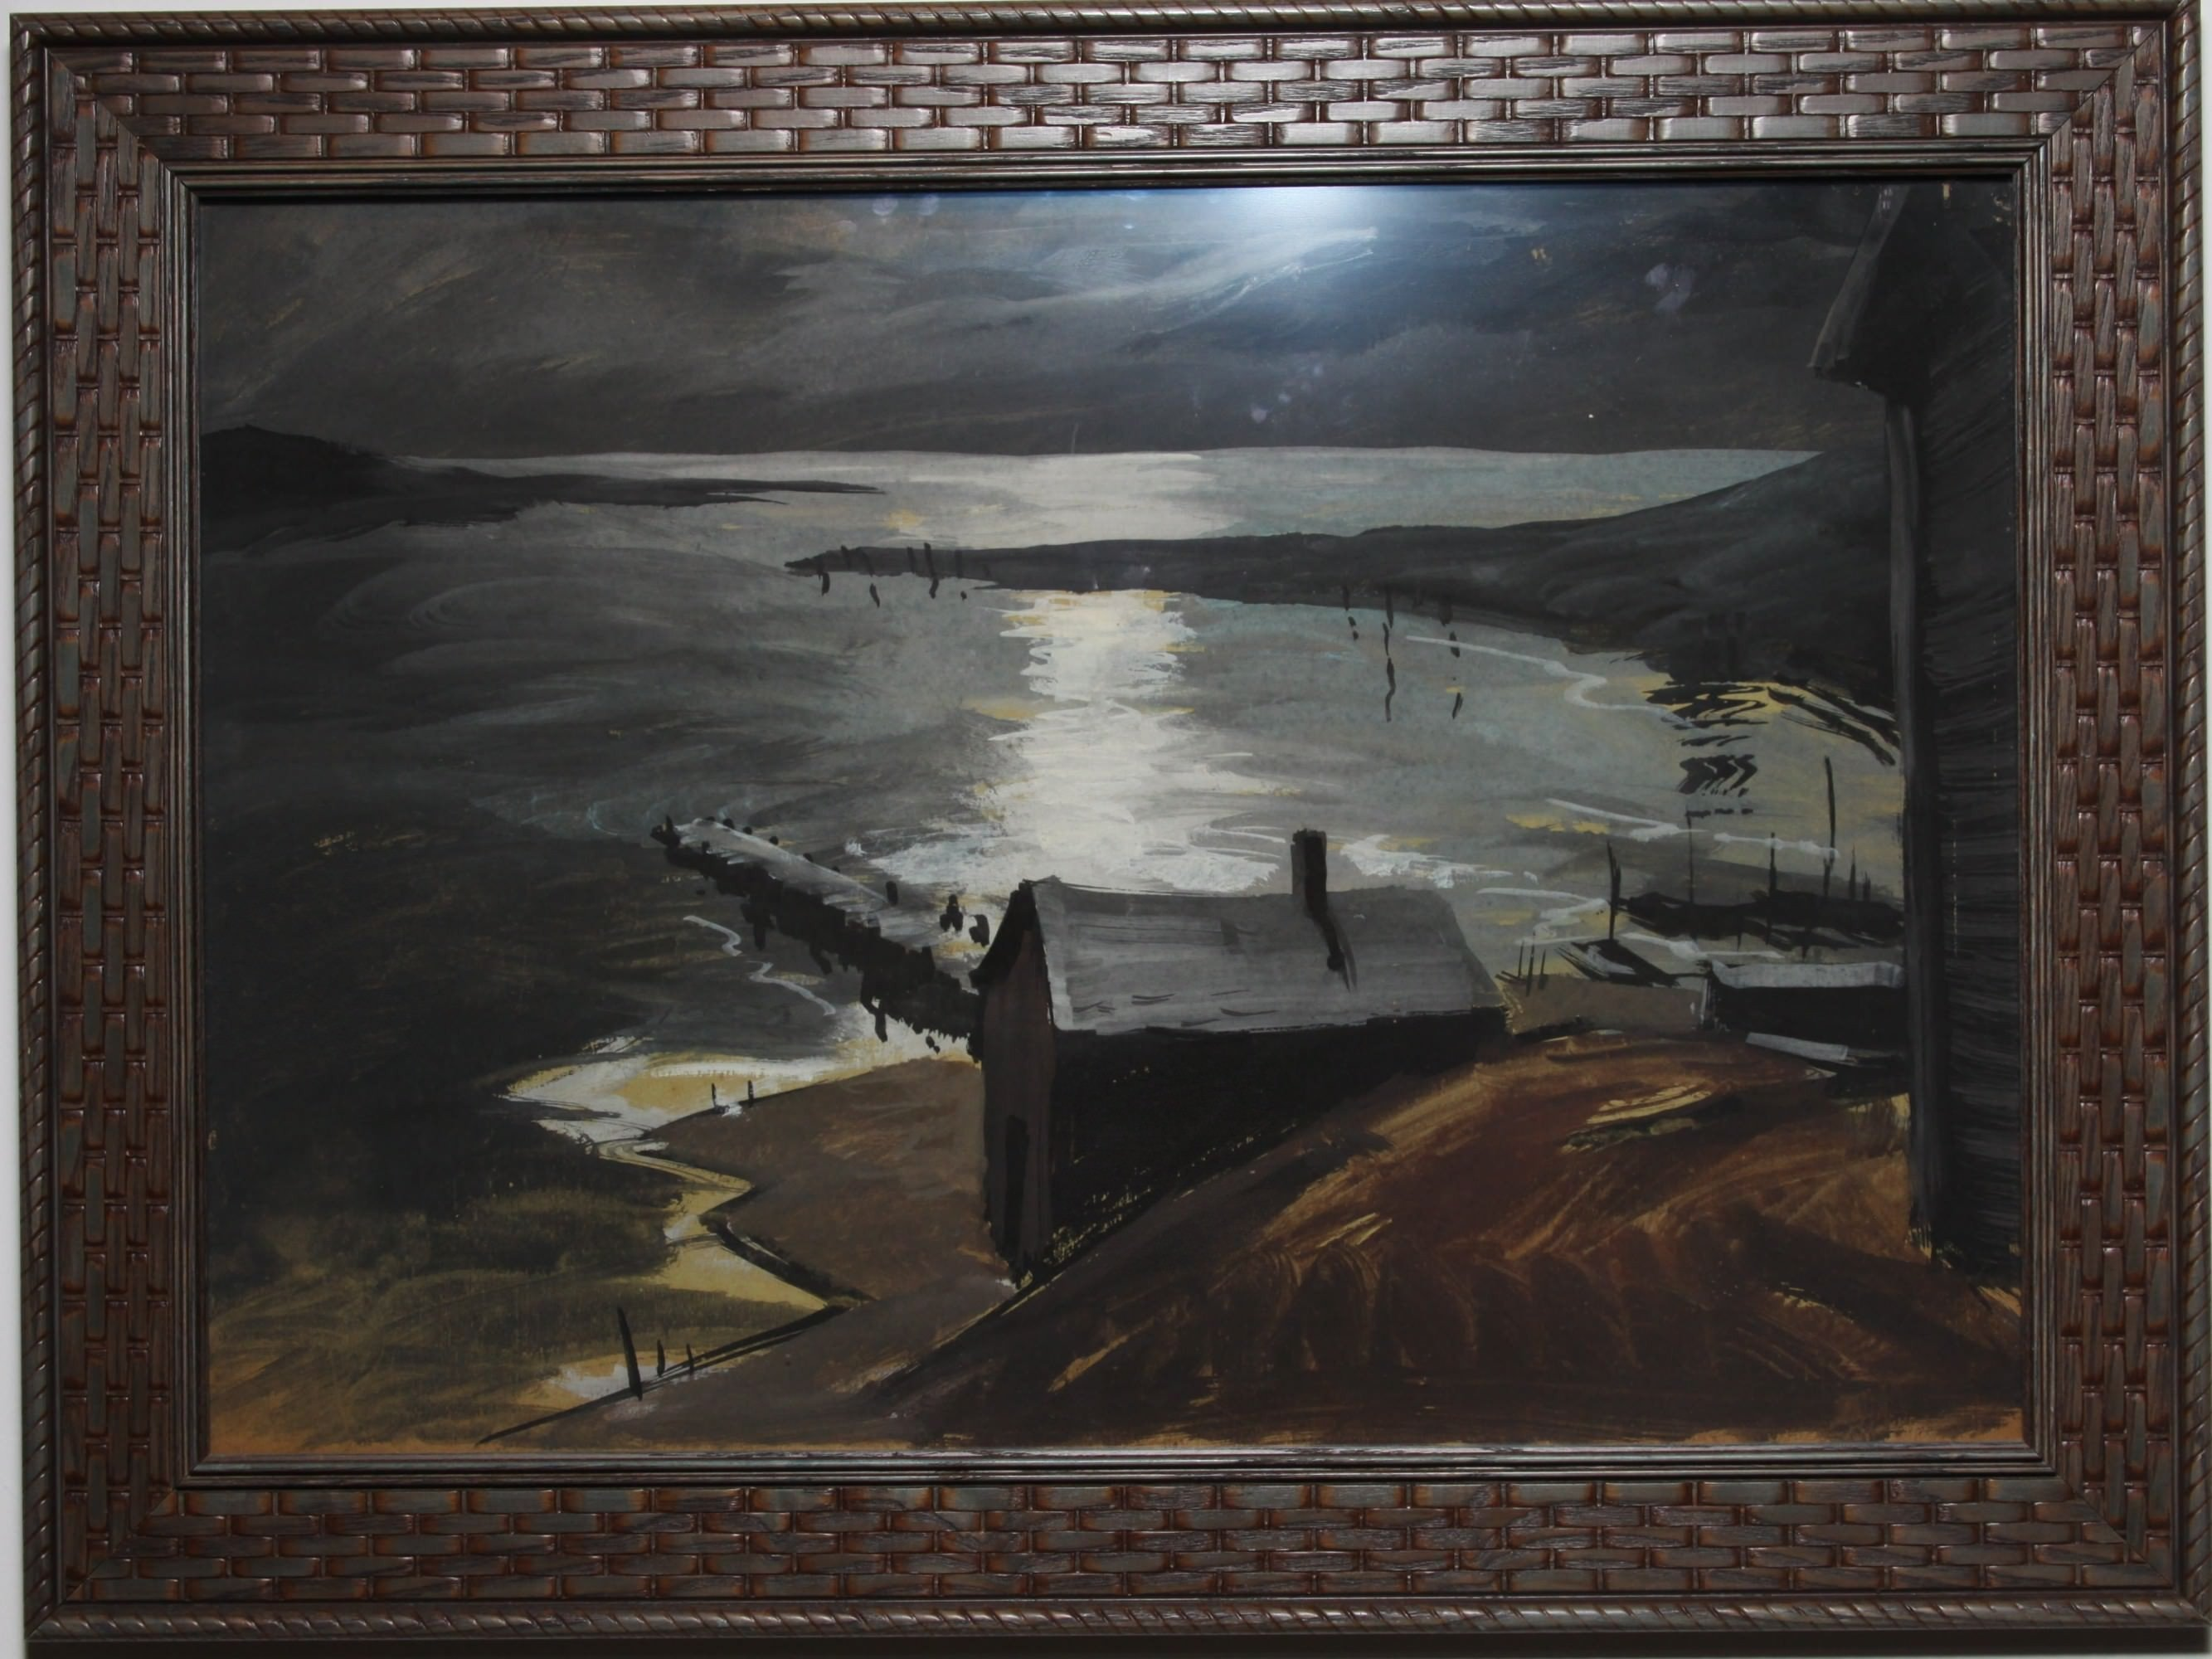 Gärtner carl frederick gaertner moonlit harbor collection wolfs paintings and sculpture